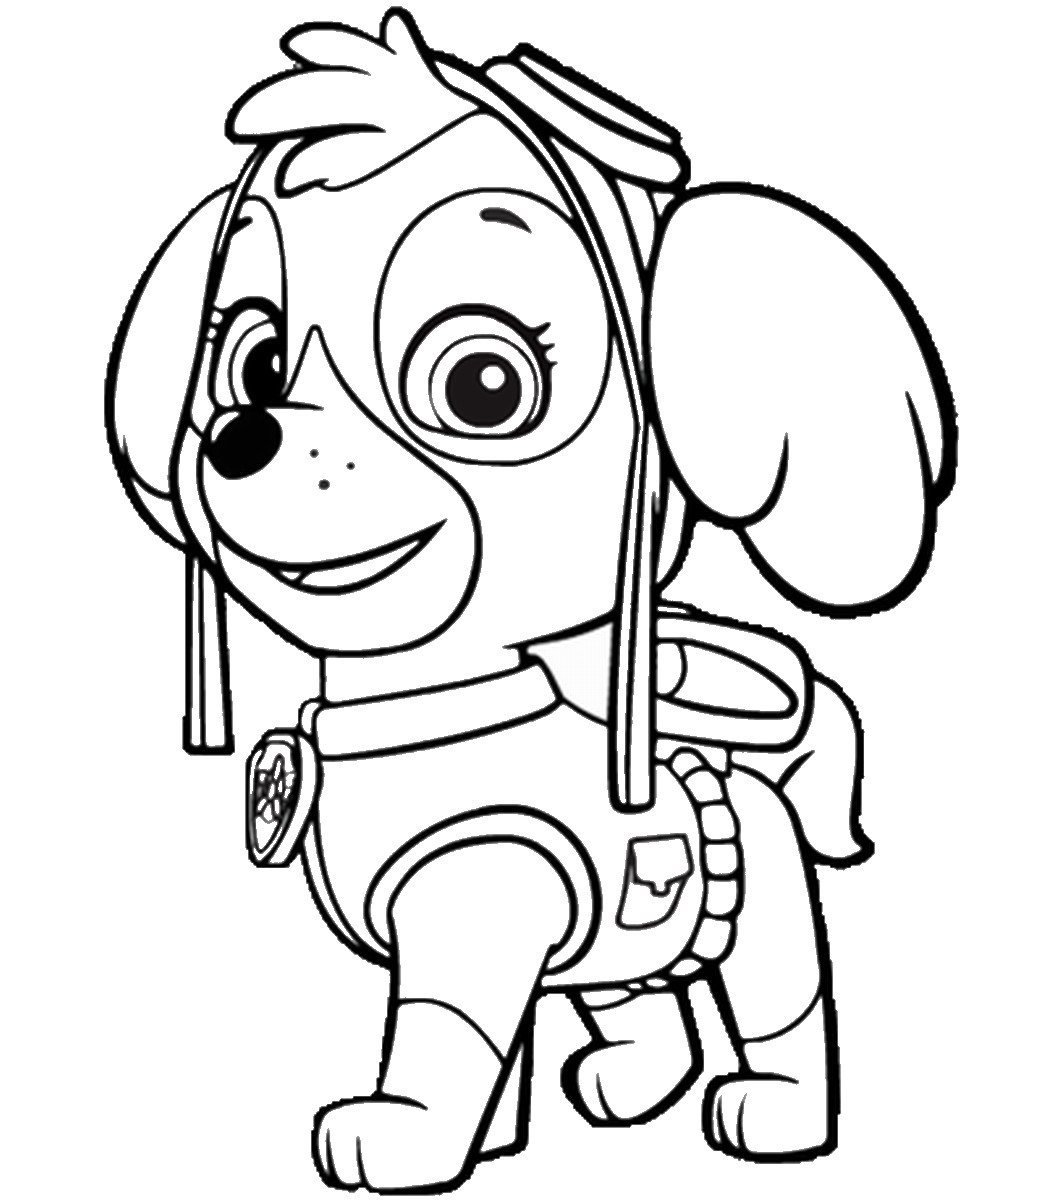 1051x1200 Paw Patrol Printable Coloring Sheets Tracker Tearing Pages